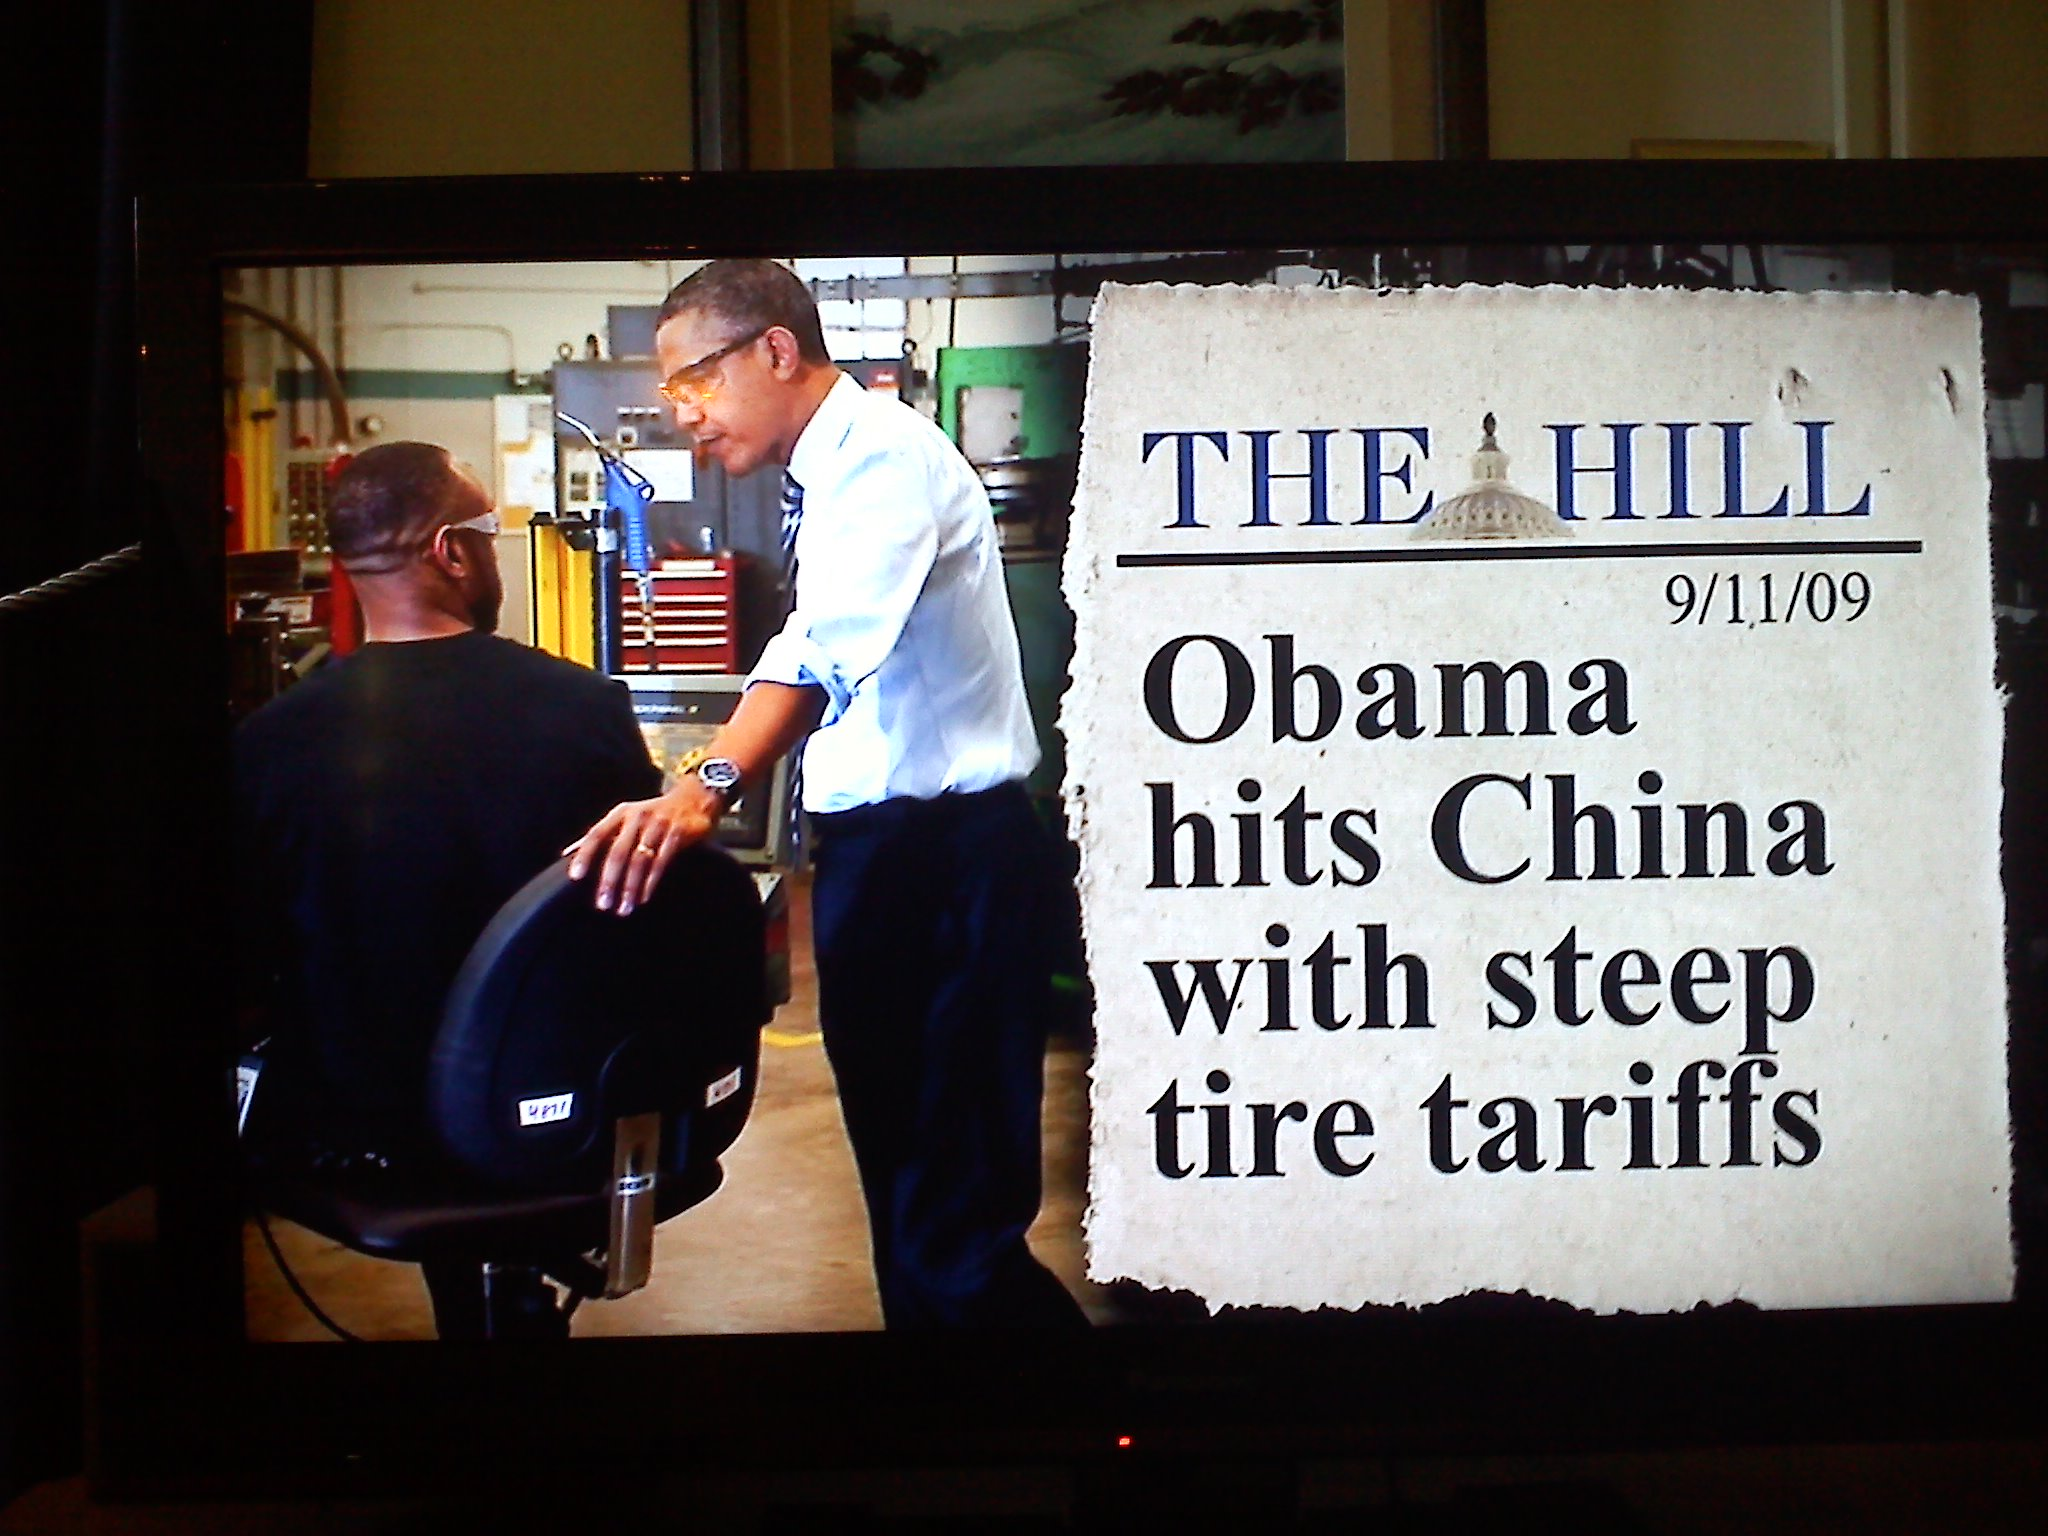 Tire tariffs saved jobs? Don't believe everything in a campaign ad